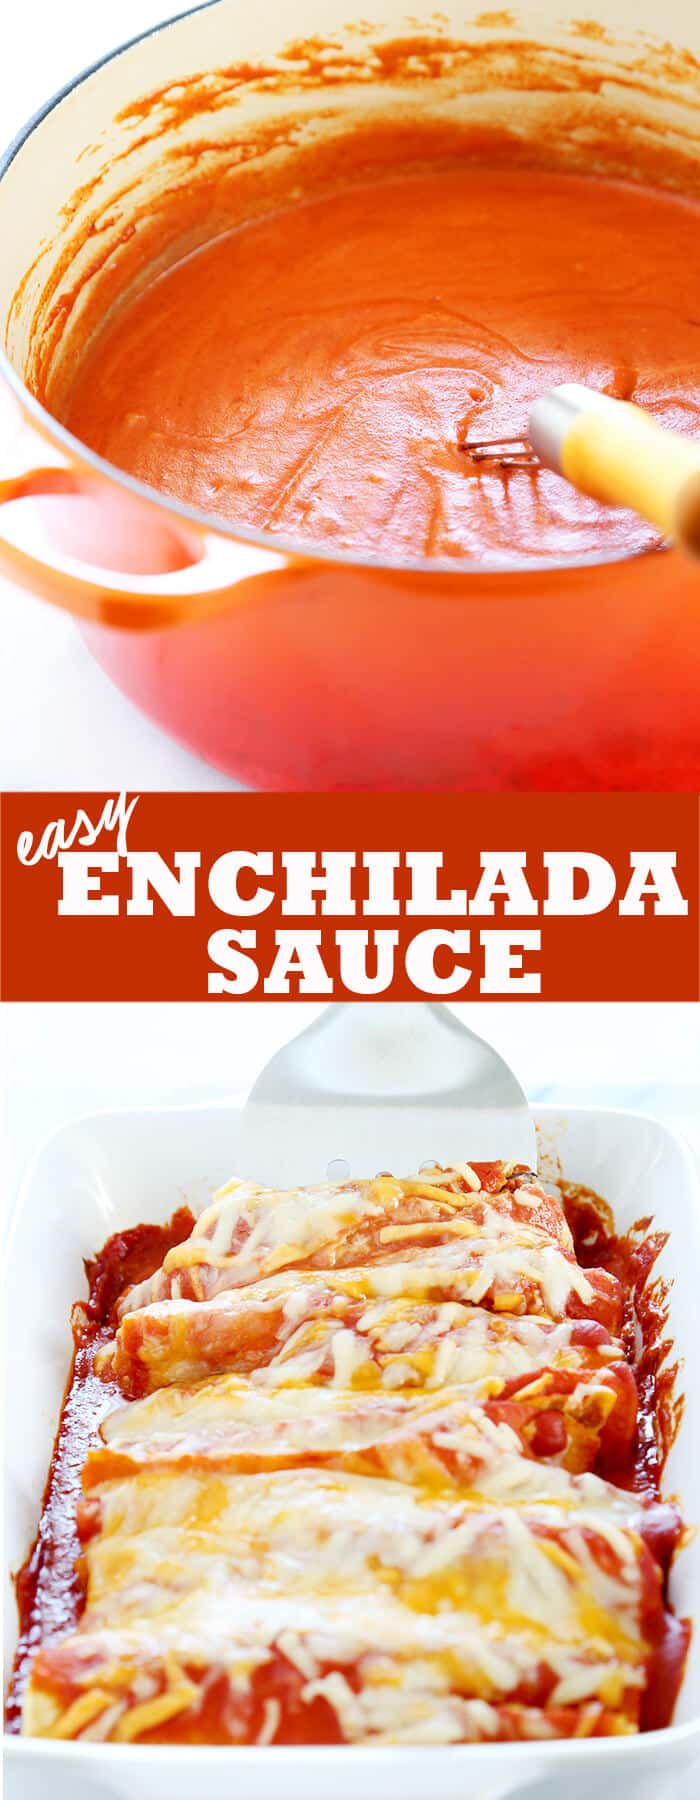 An orange pot with enchilada sauce and enchiladas in a casserole dish with a spatula